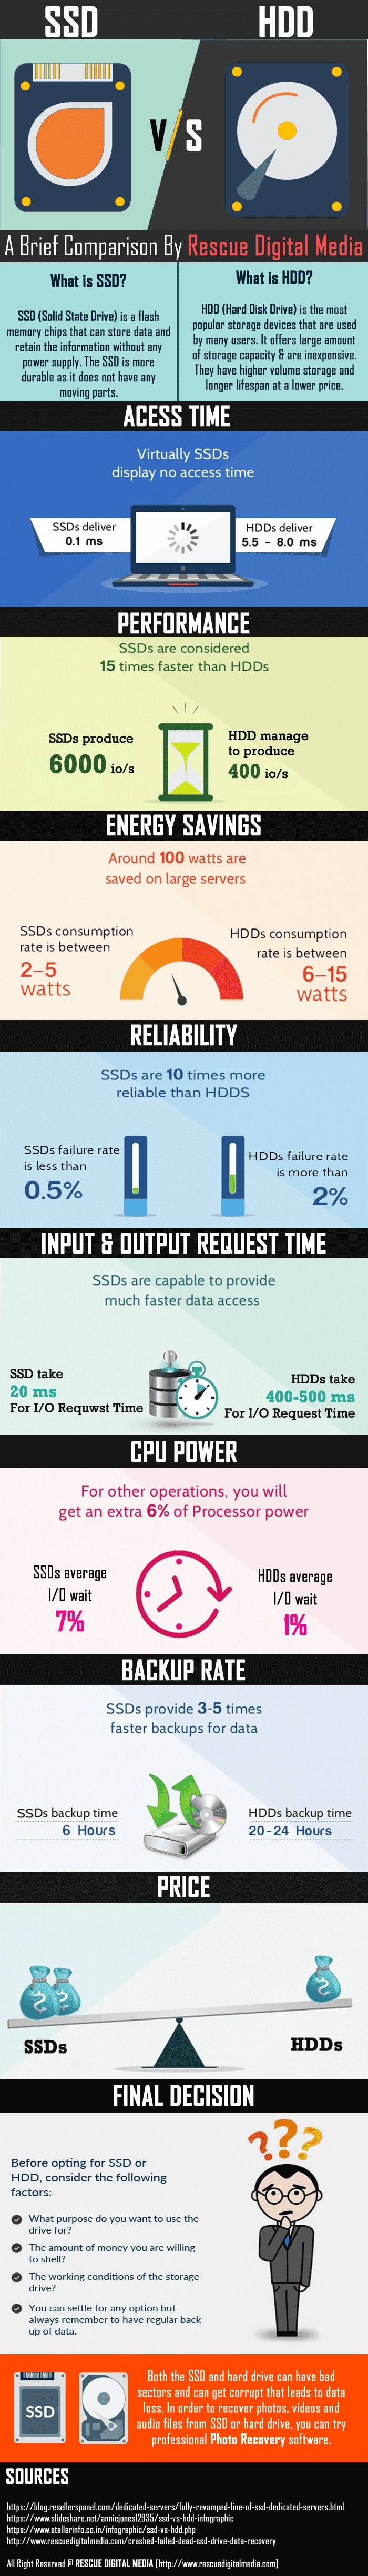 SSD Vs HDD: Solid State Drive And Hard Disk Drive Comparison #infographic